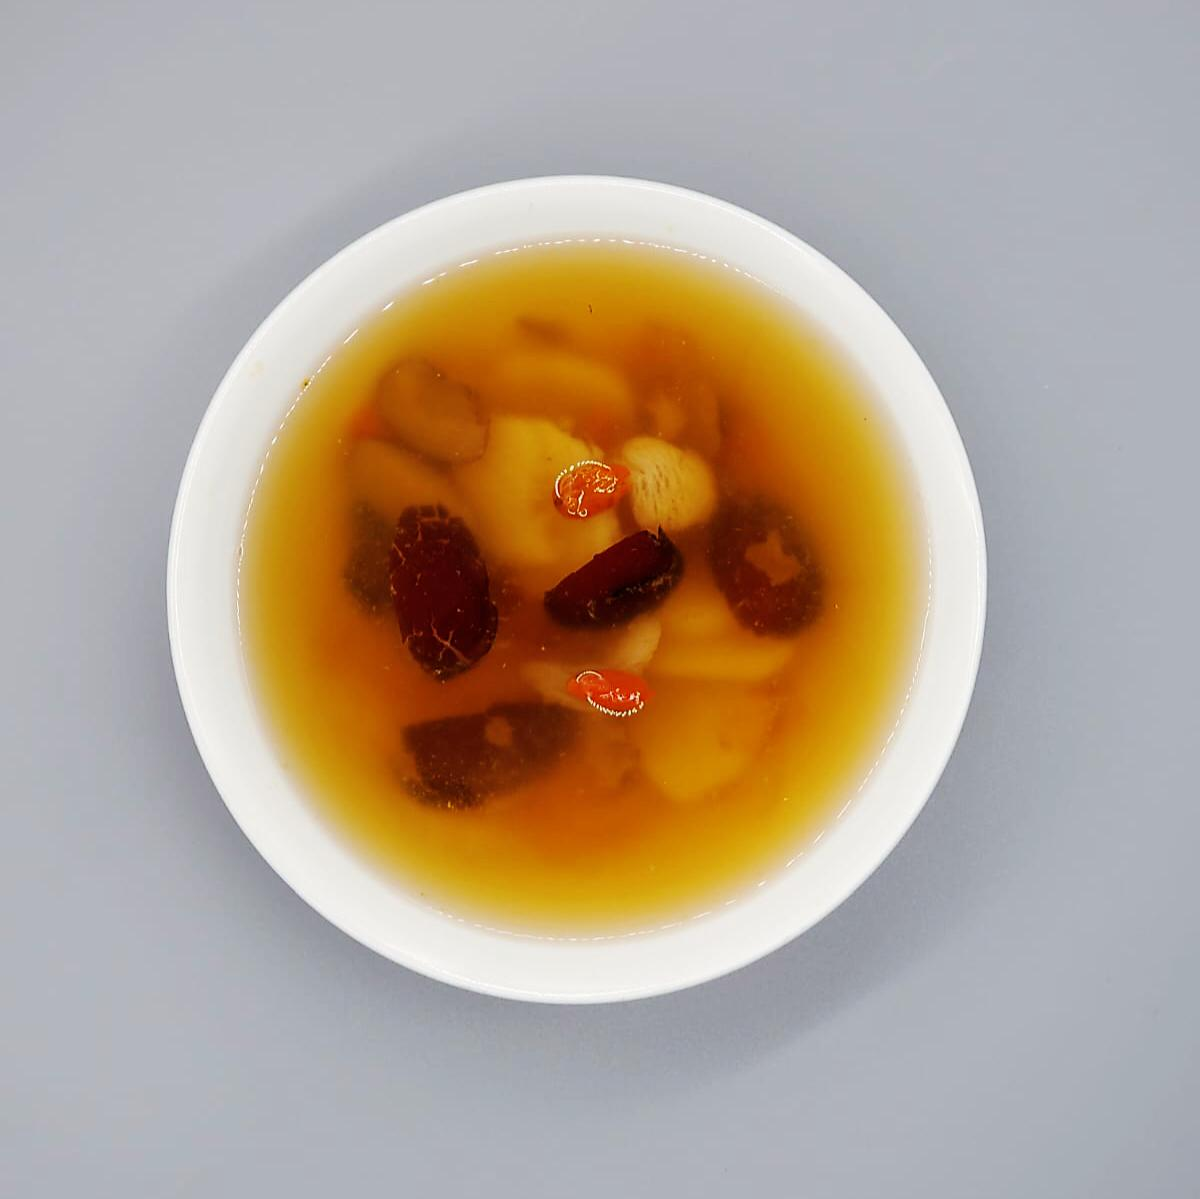 Ginger juice, Longan & Peach Gum Dessert (New Product)